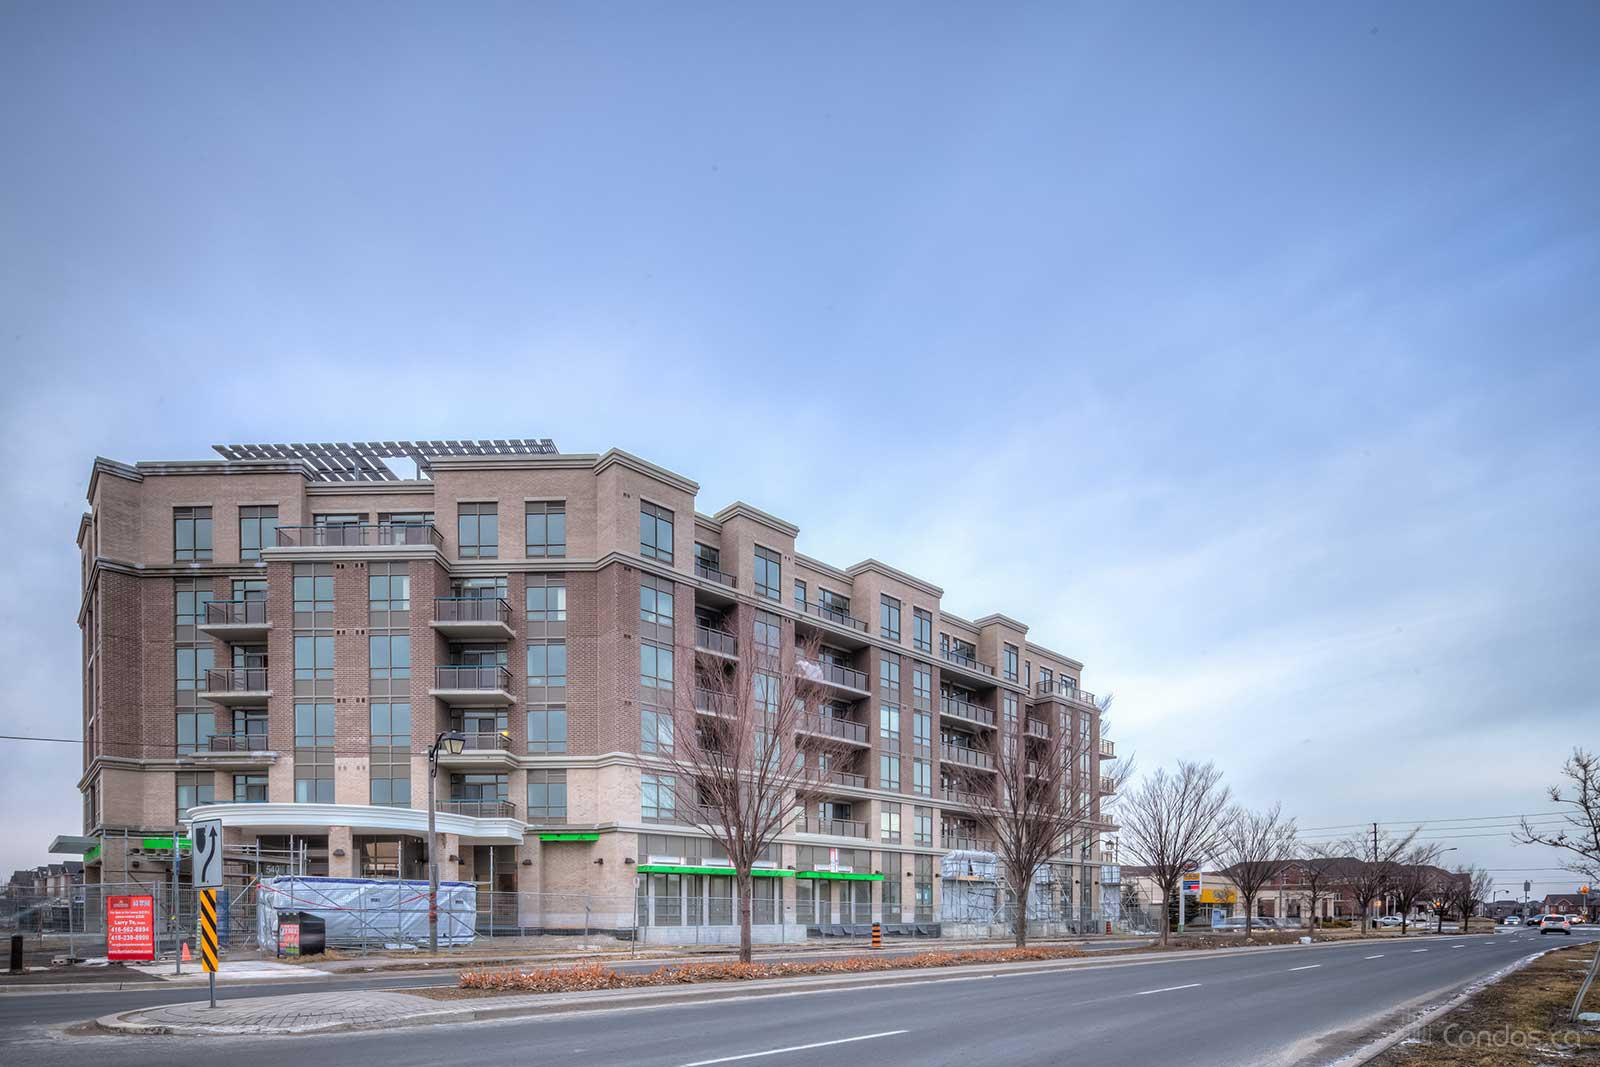 The Essential Condos at 9610 McCowan Rd, Markham 0